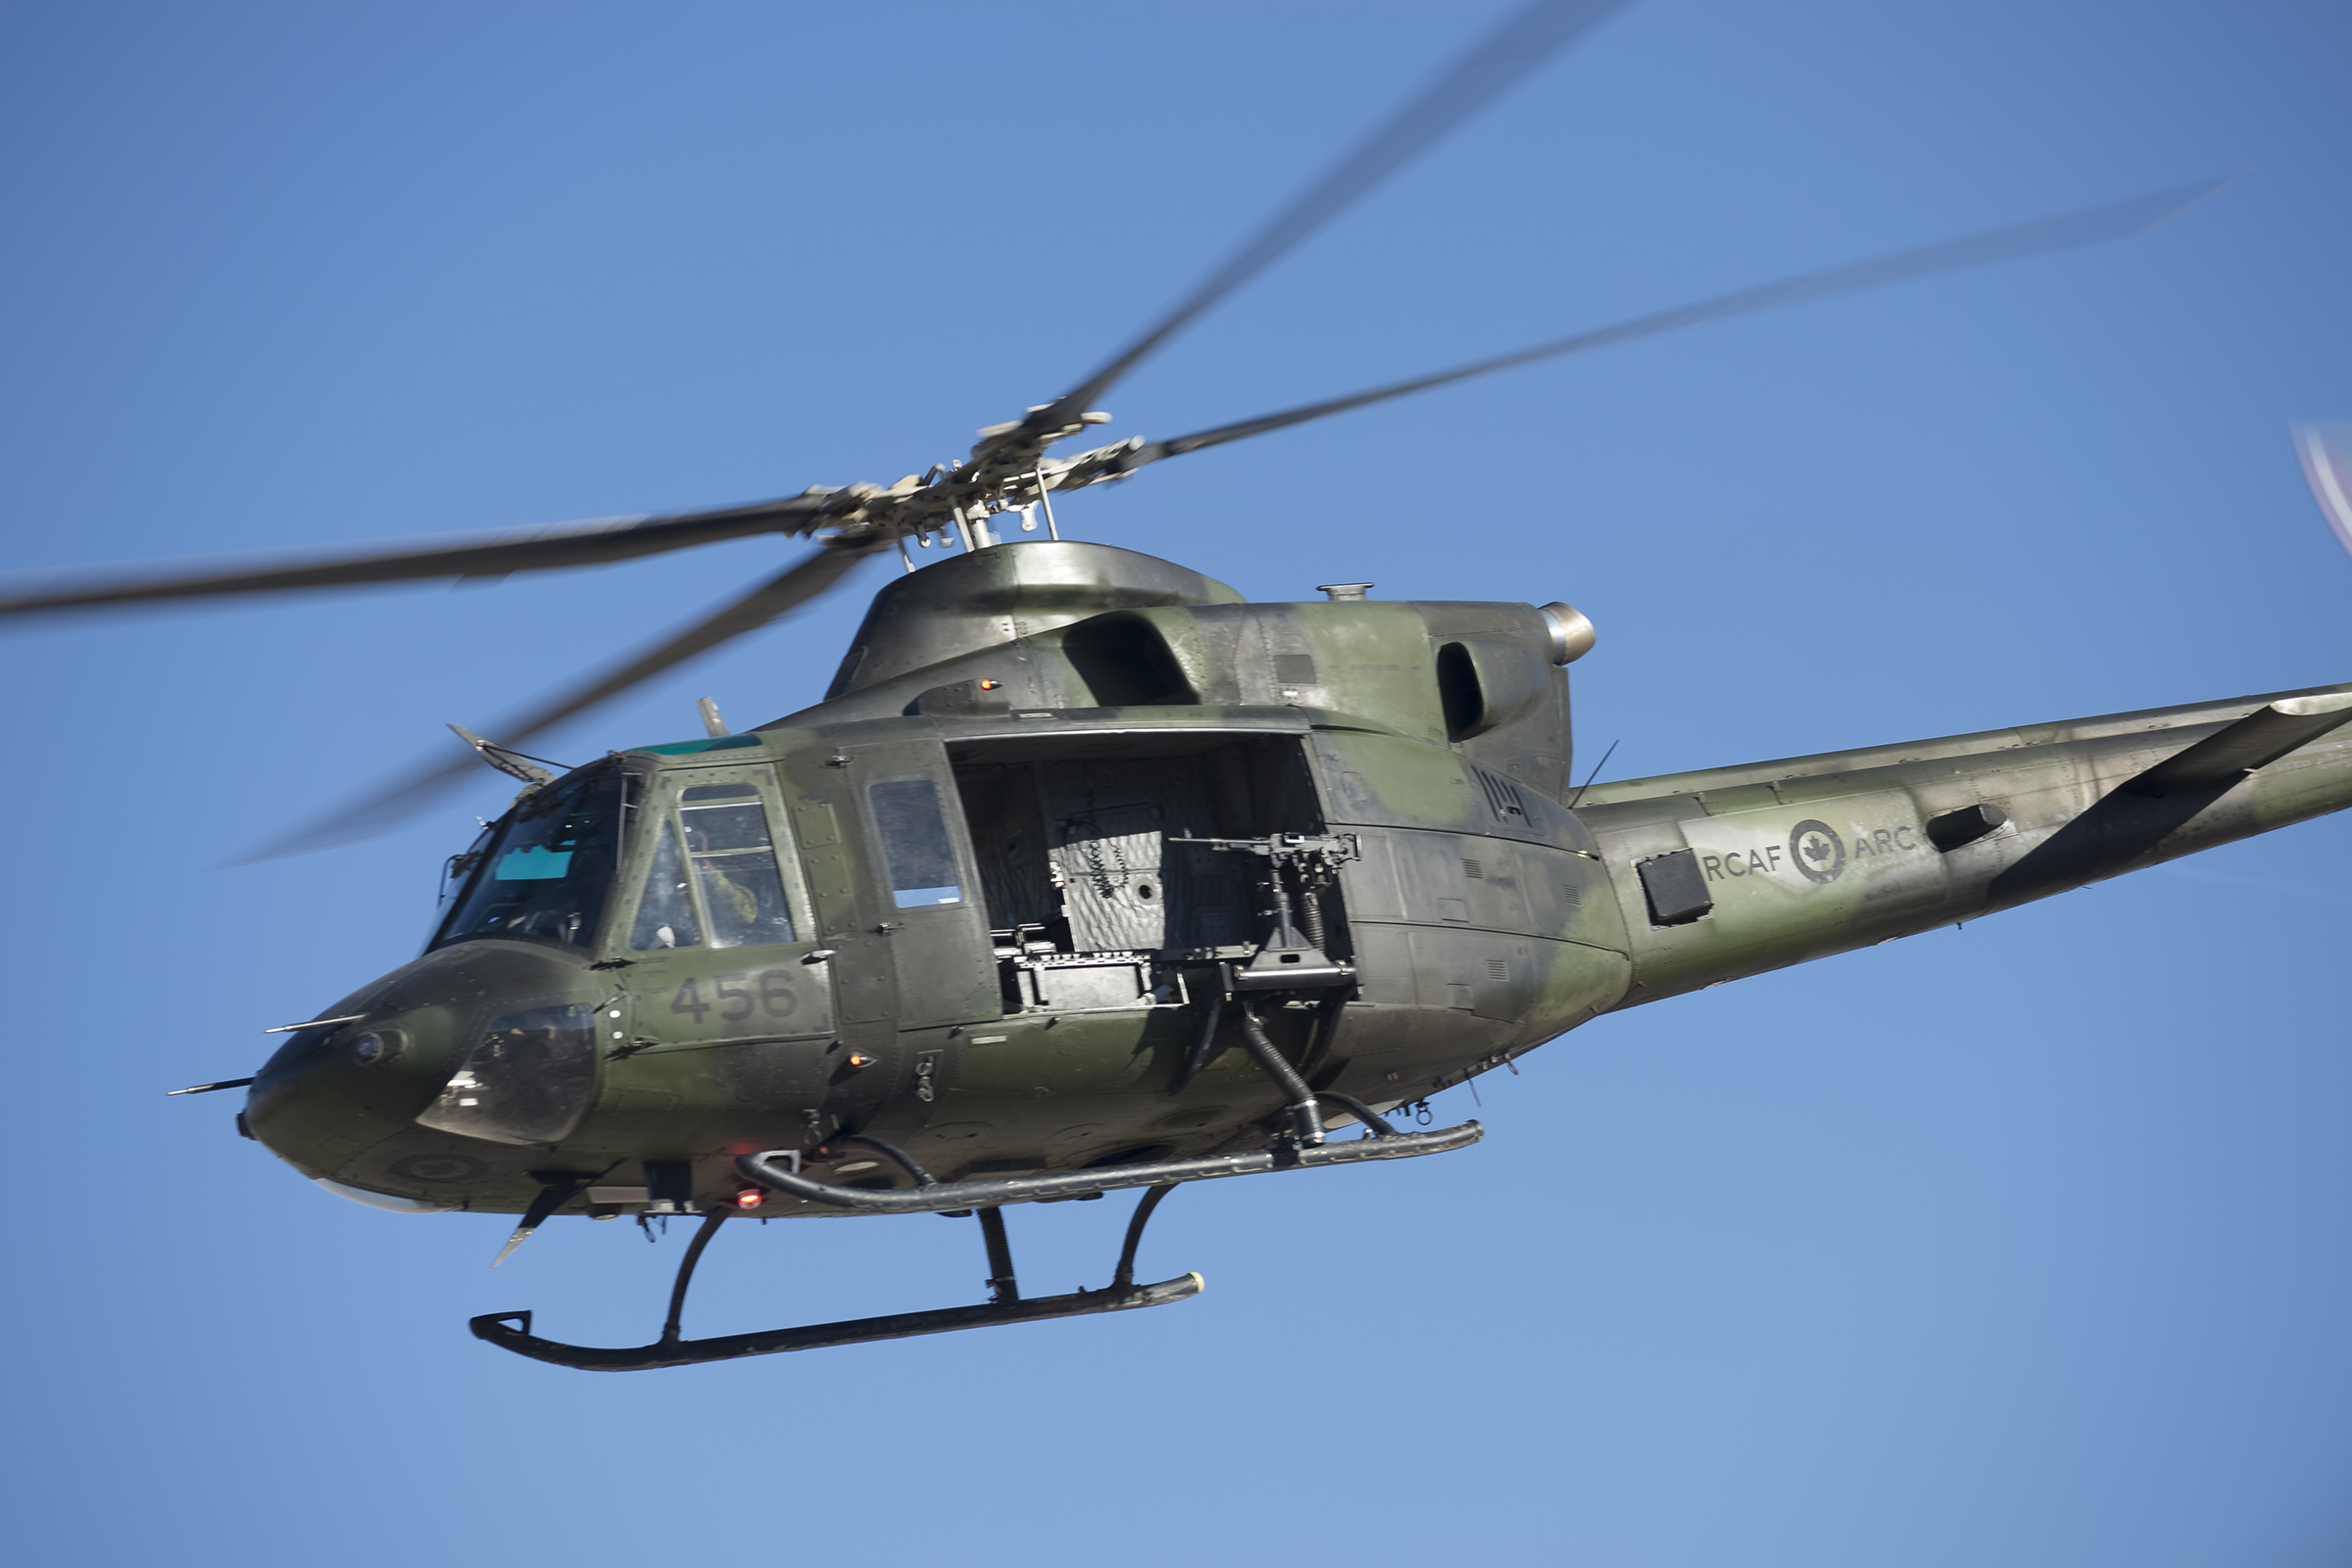 A CH-146 Griffon from 408 Tactical Helicopter Squadron in flight during Exercise Striking Bat at Marine Corps Air Ground Combat Center Twentynine Palms, California. The squadron is practicing flying operations and helicopter maintenance in an austere and challenging desert environment, similar to what they will face during their upcoming deployment to Iraq. PHOTO: Corporal Desiree T. Bourdon, DND